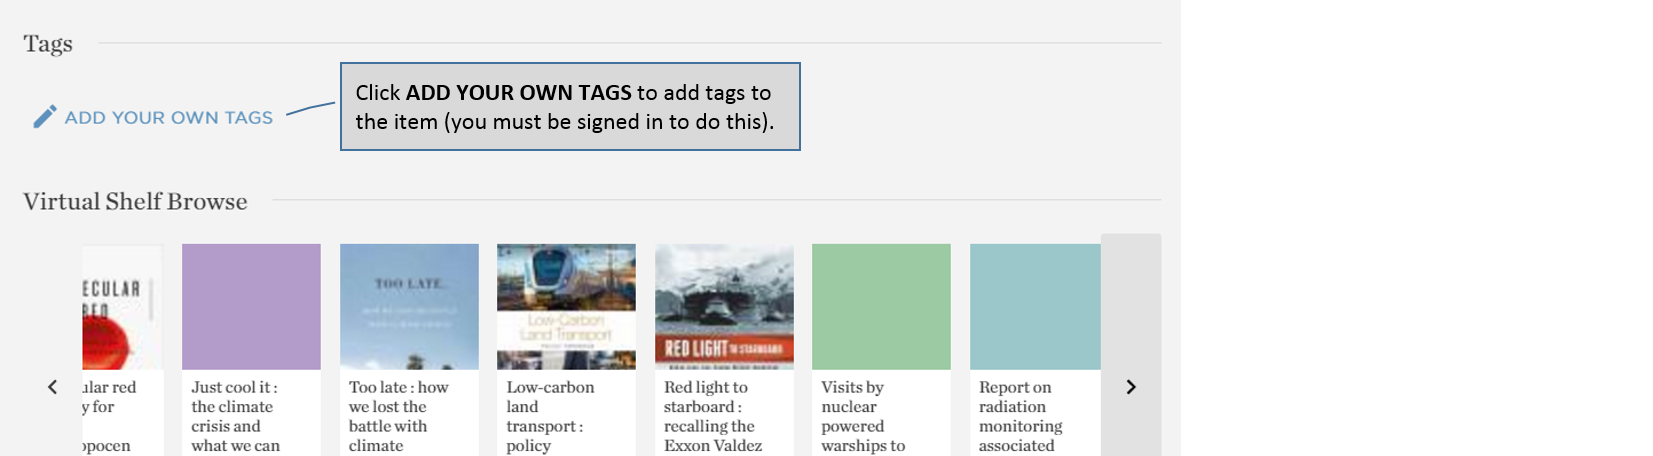 Catalogue – adding User Tags